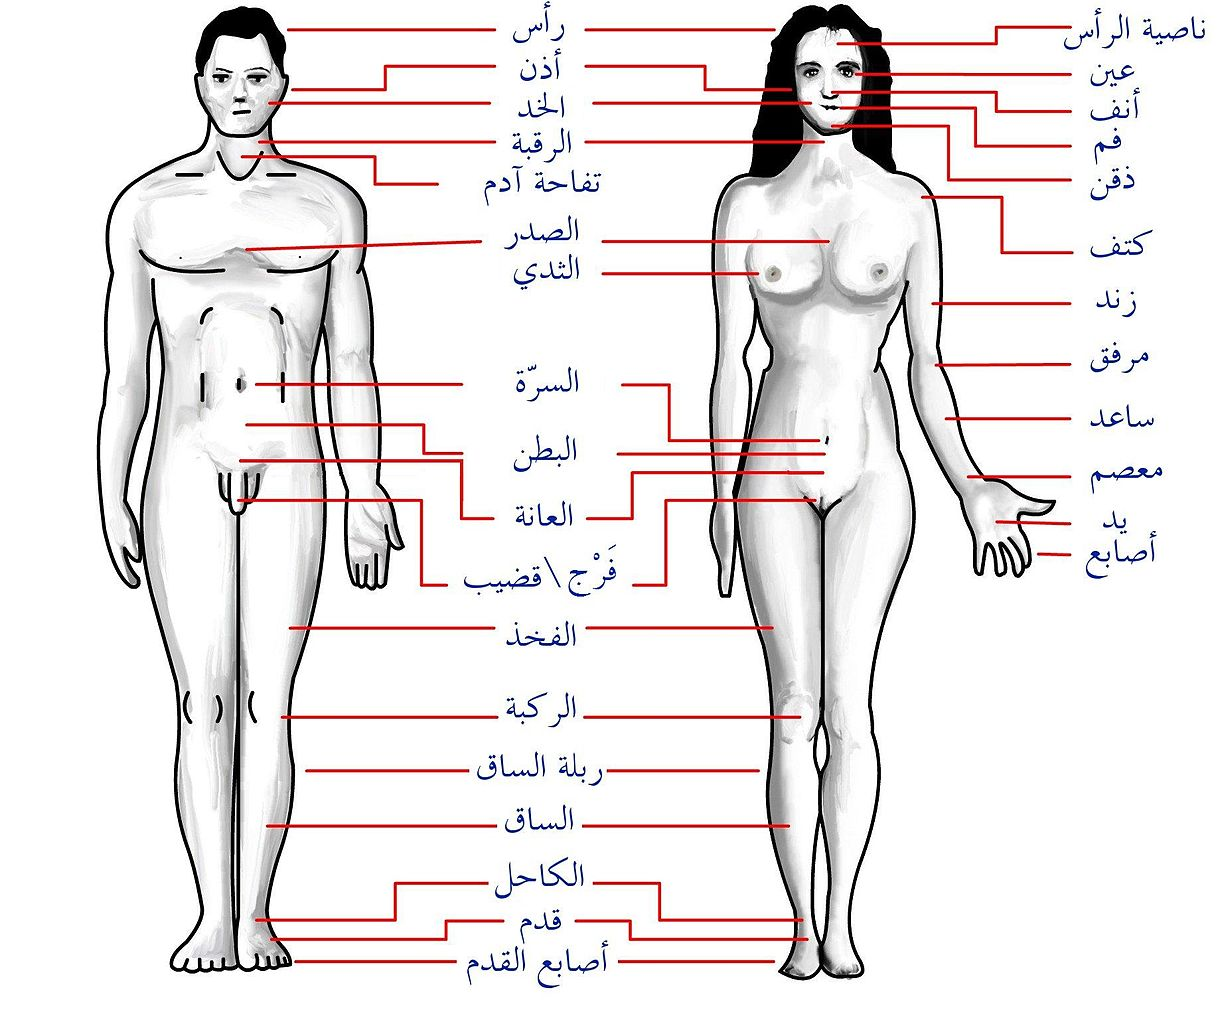 البظر http://ar.wikipedia.org/wiki/%D9%85%D9%84%D9%81:Human_body_features_ar.jpg